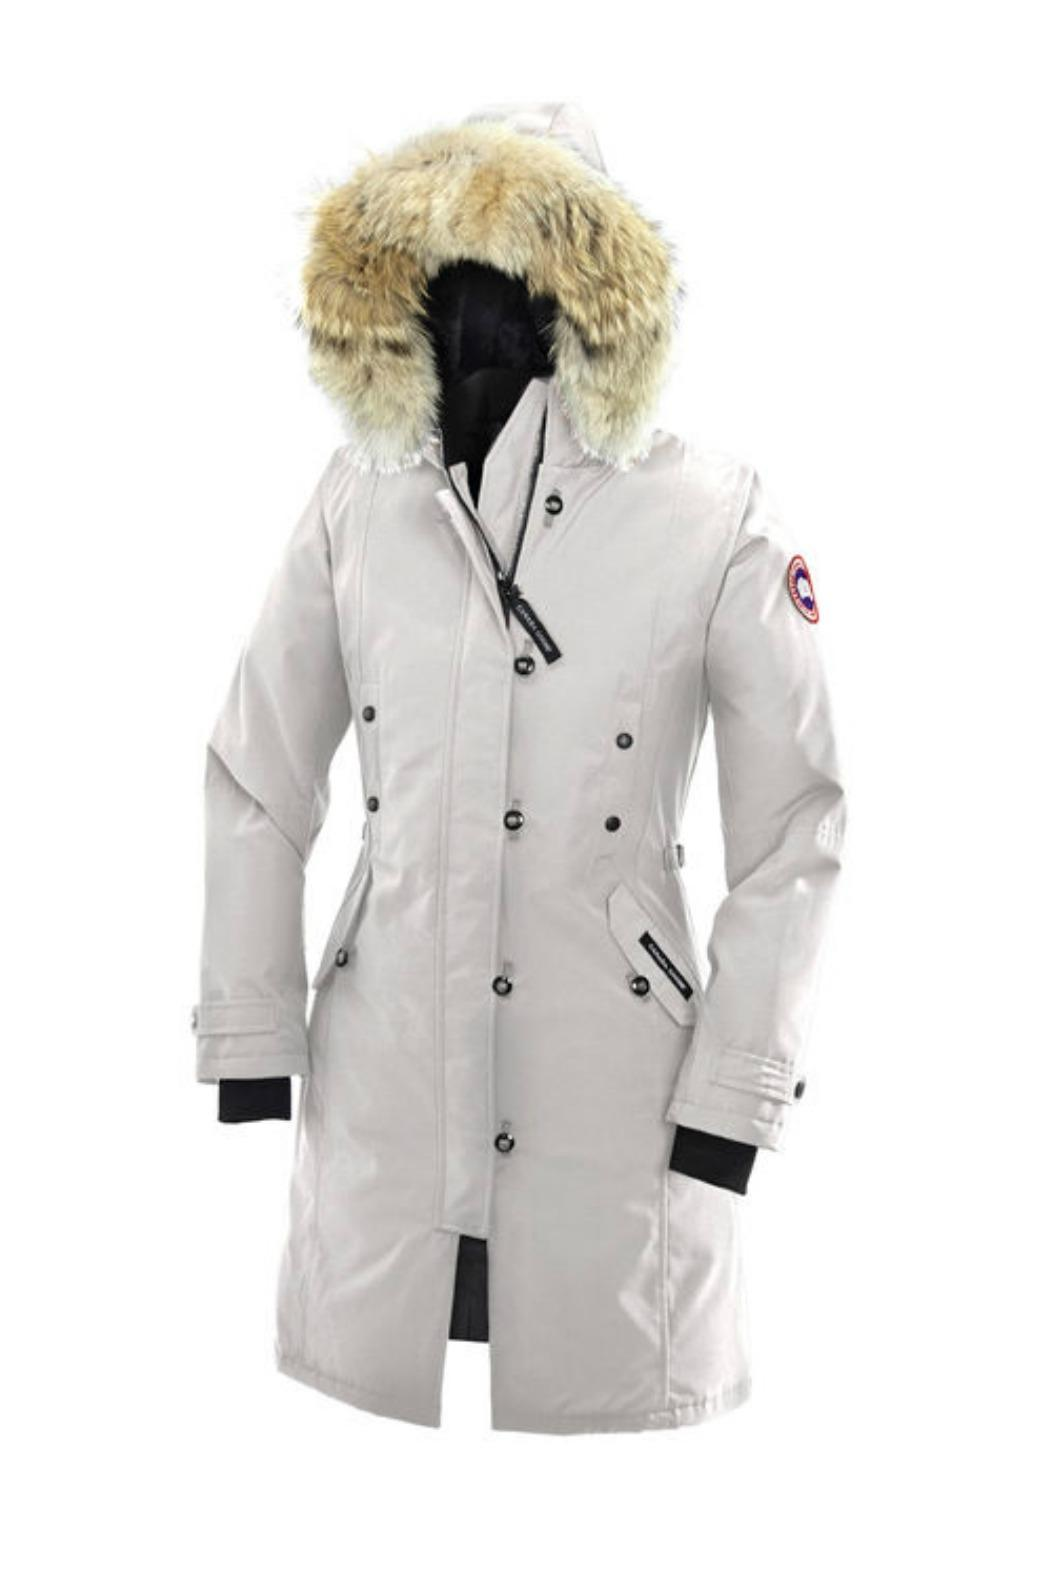 how to clean a canada goose jacket at home